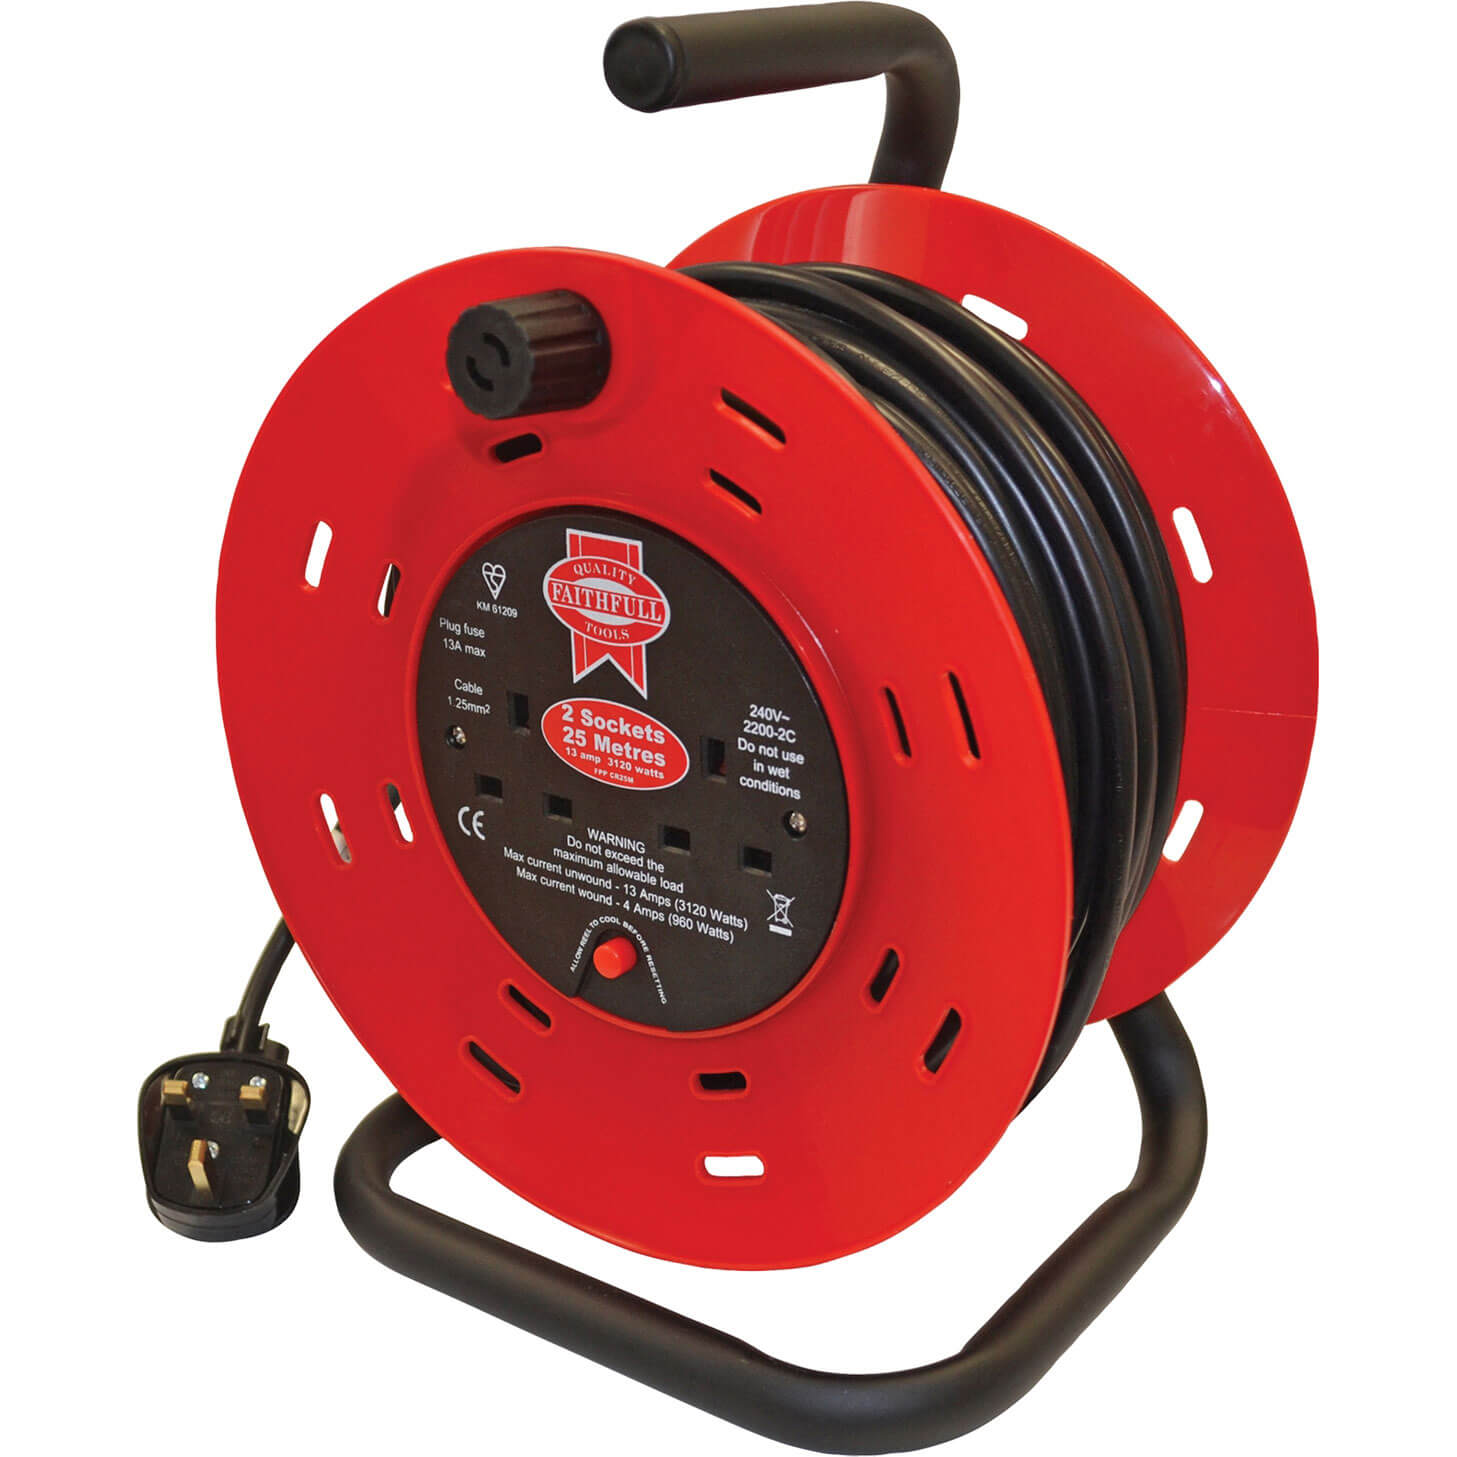 Faithfull 2 Socket 25m Cable Reel 13amp 240v